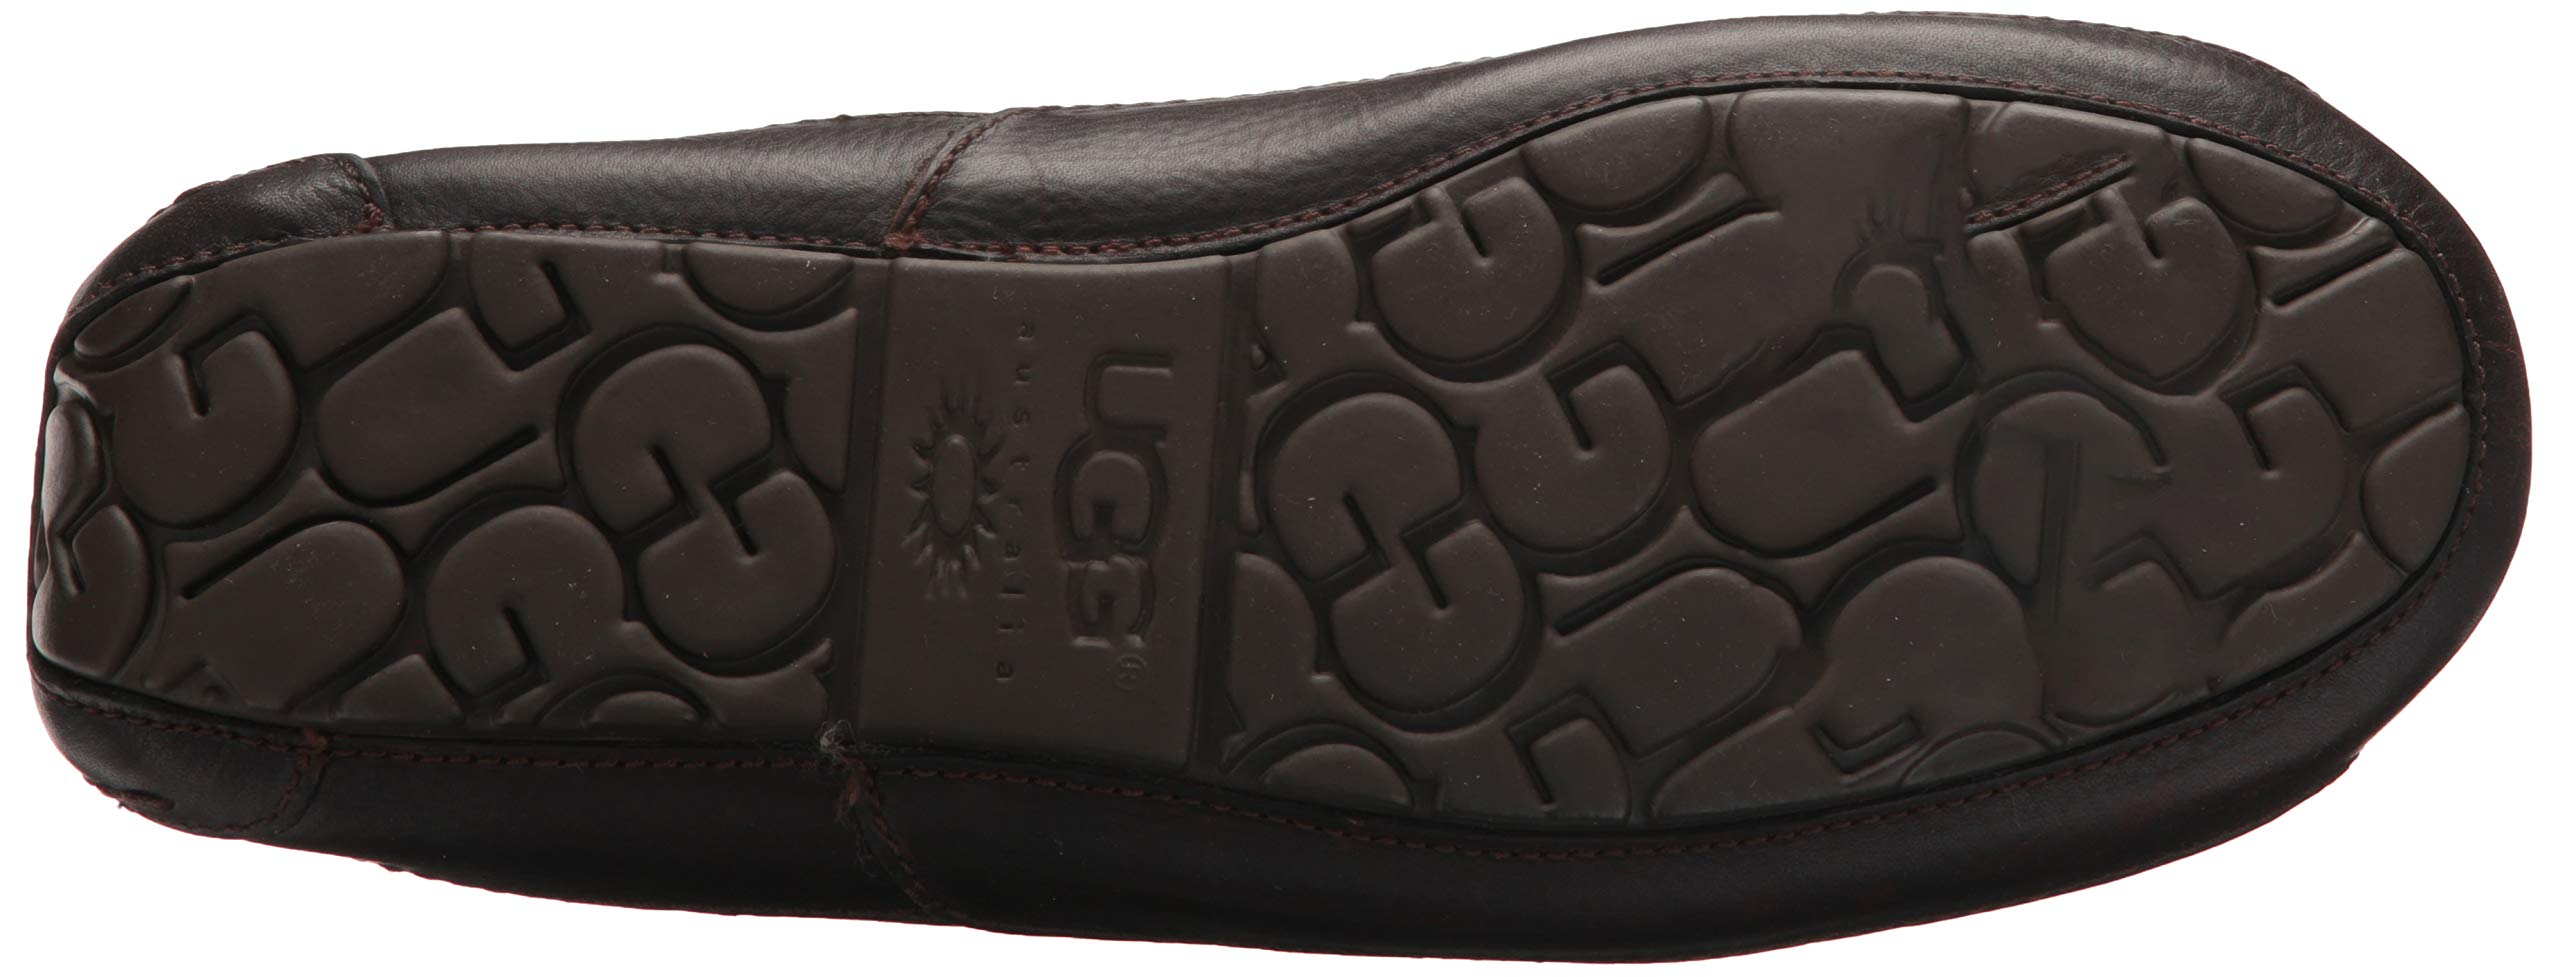 UGG Men's Ascot Slipper, China Tea Leather, 15 M US by UGG (Image #3)